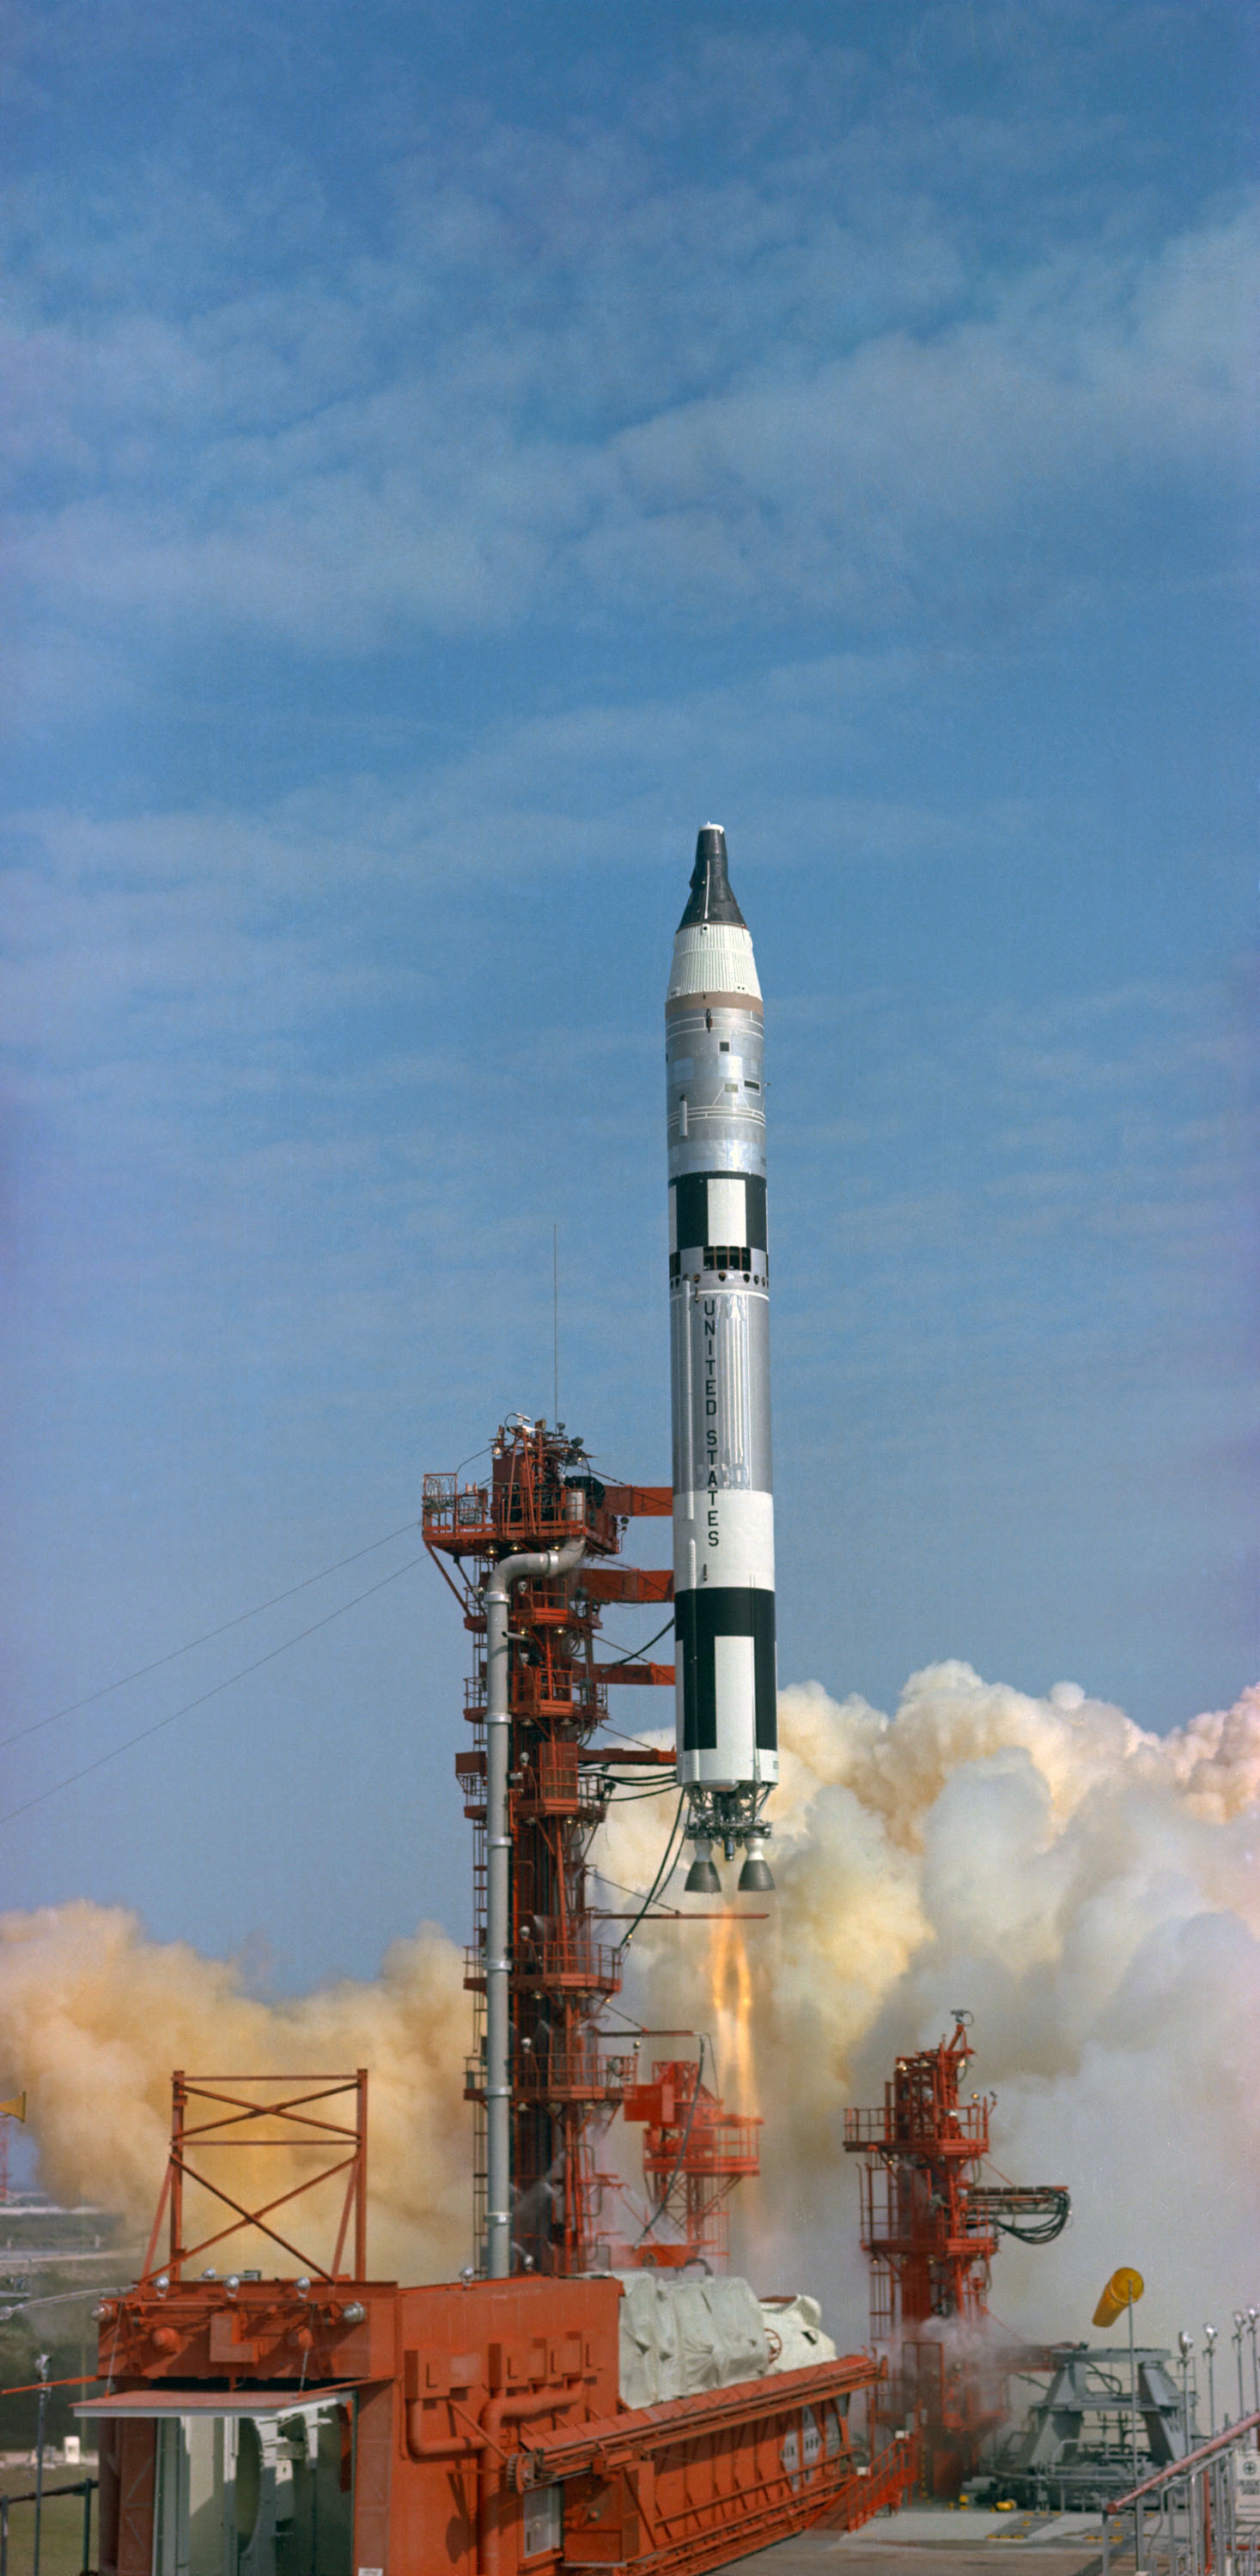 Image: Launch of first crewed Gemini flight